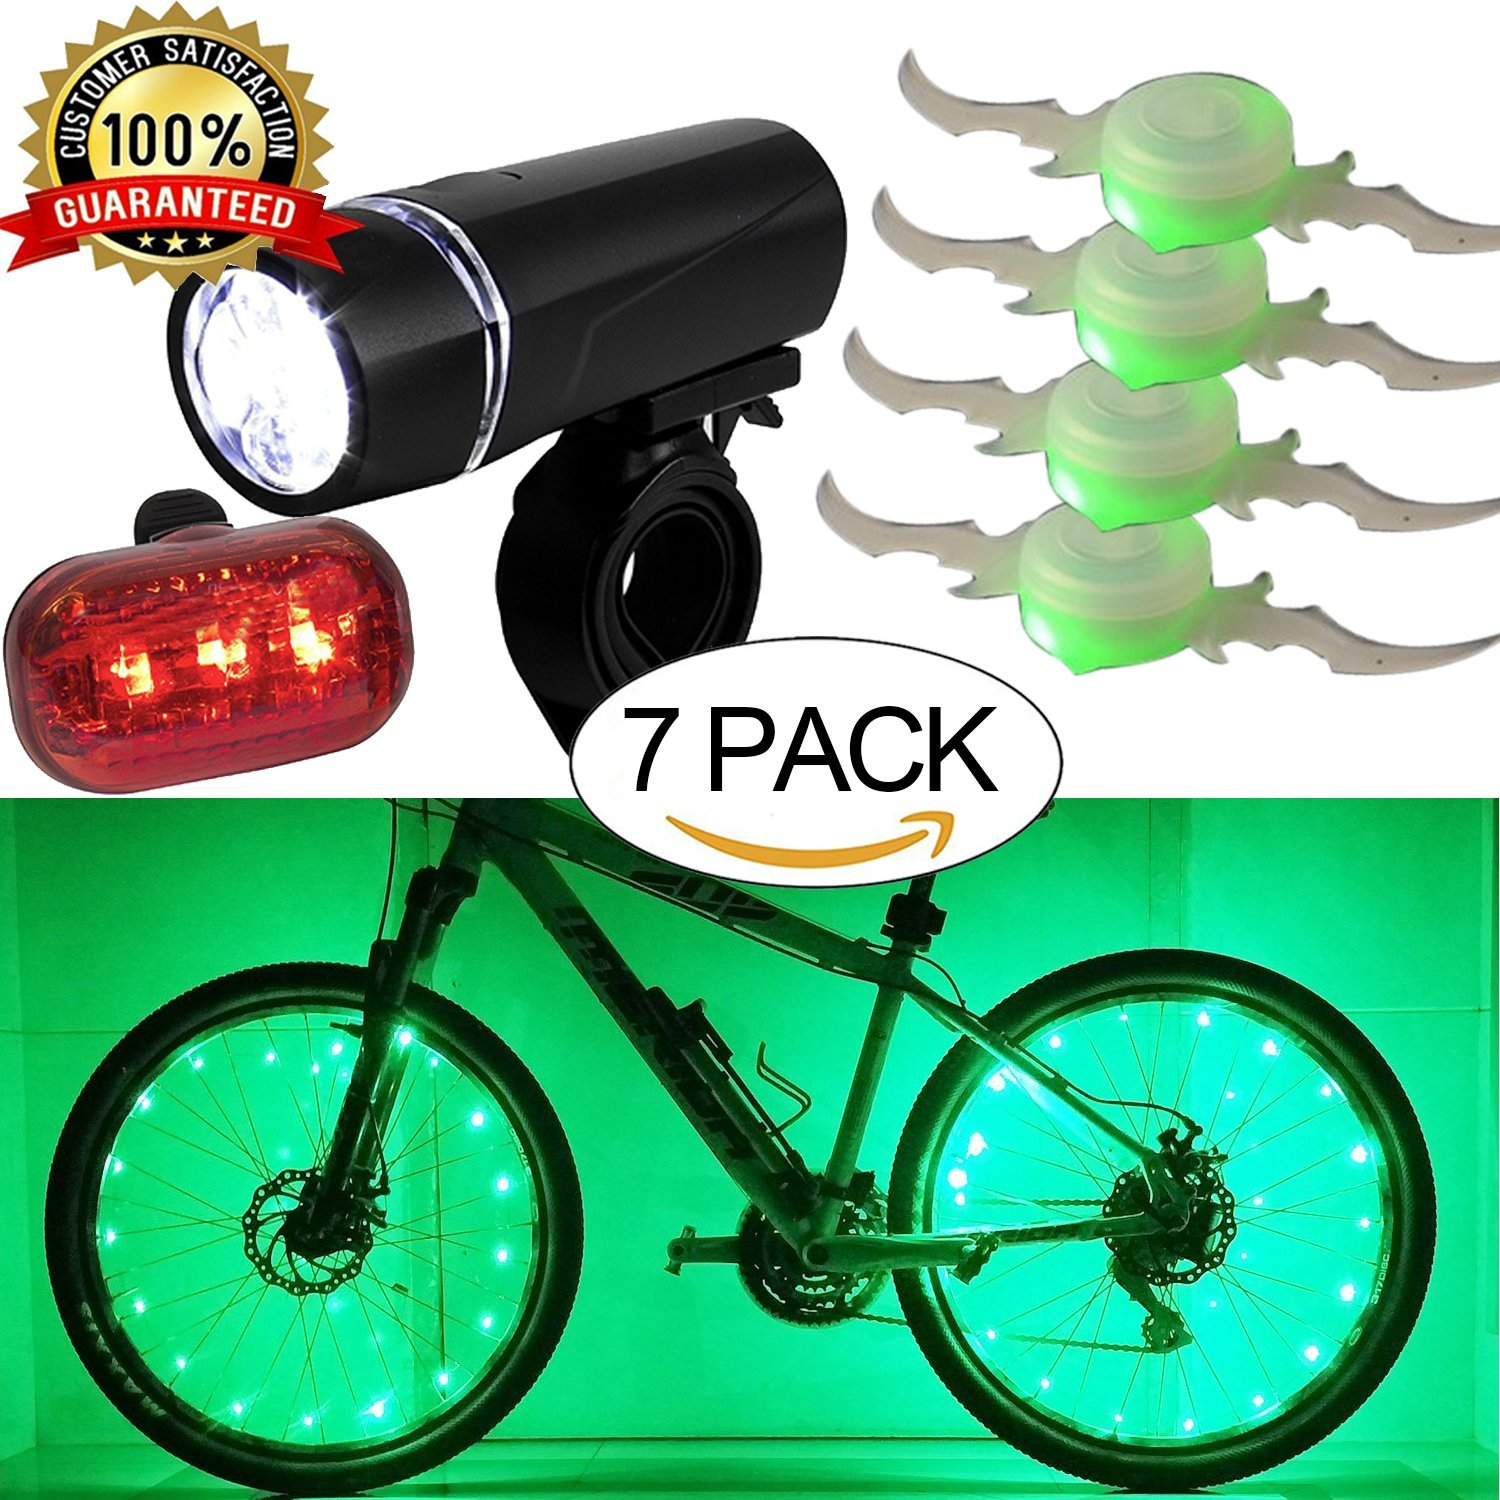 Bicycle LED Light Set Super Bright Headlight Taillight,Waterproof Flashlight Bike Wheel Lights,Colorful Bicycle Wheel Spoke,Cycling Light String,Bicycle Tire Accessories-GREEN